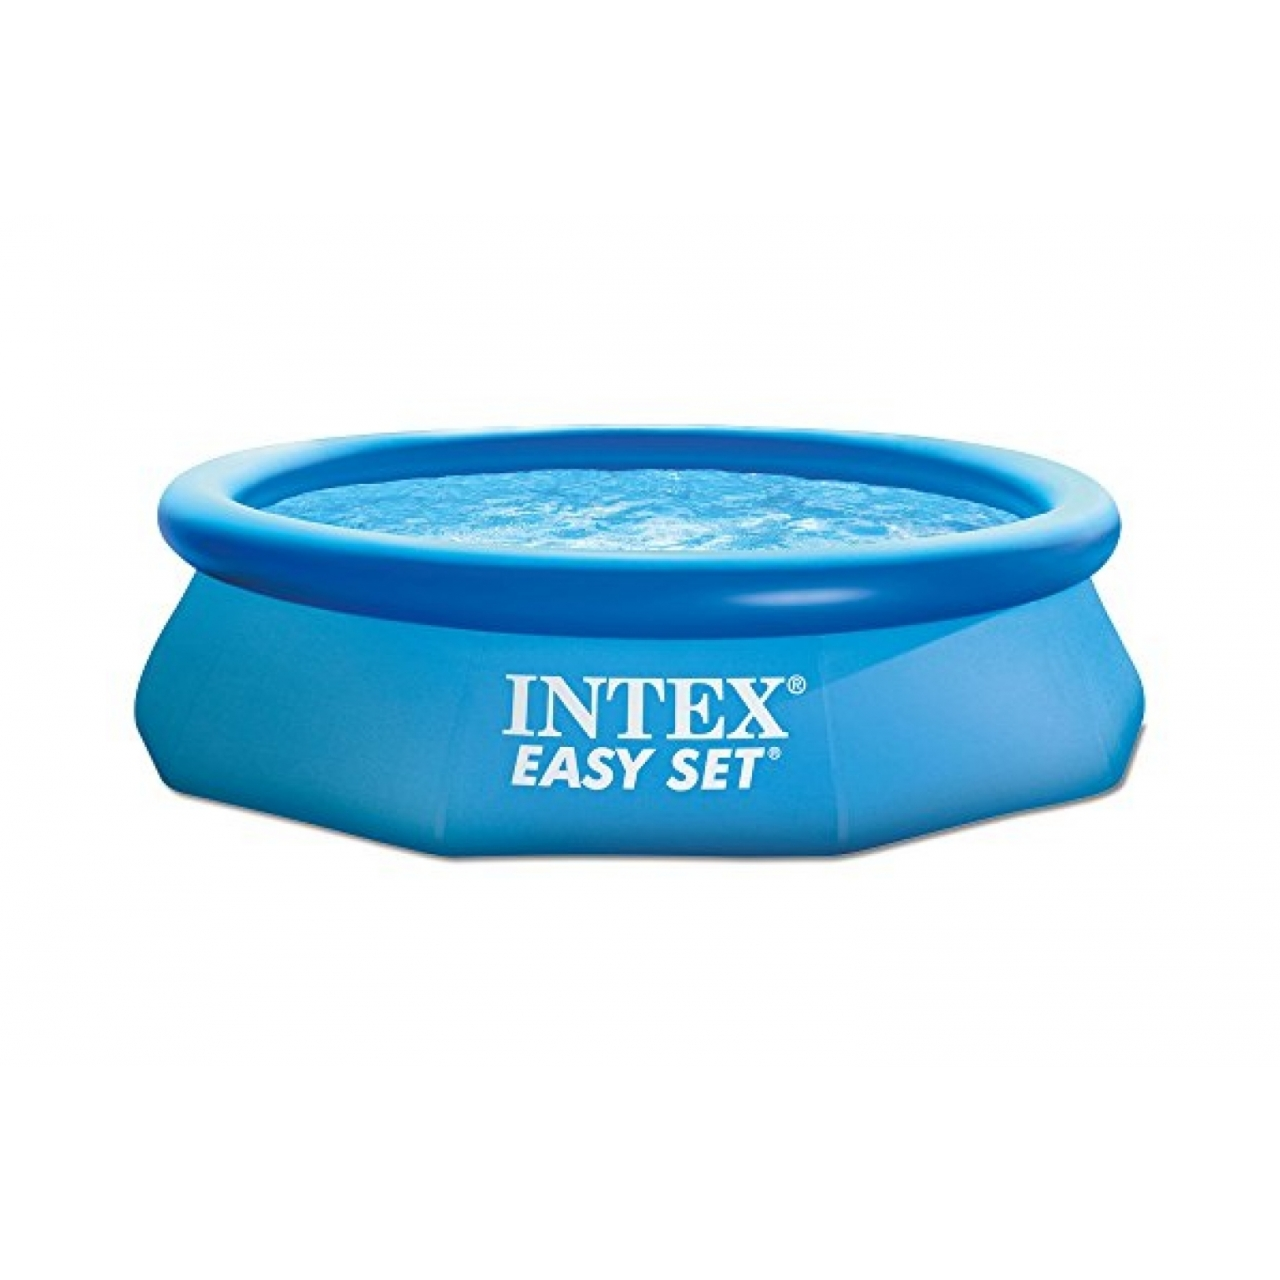 Easy Pool Pflege Intex Easy Set Pool Test Klartest De